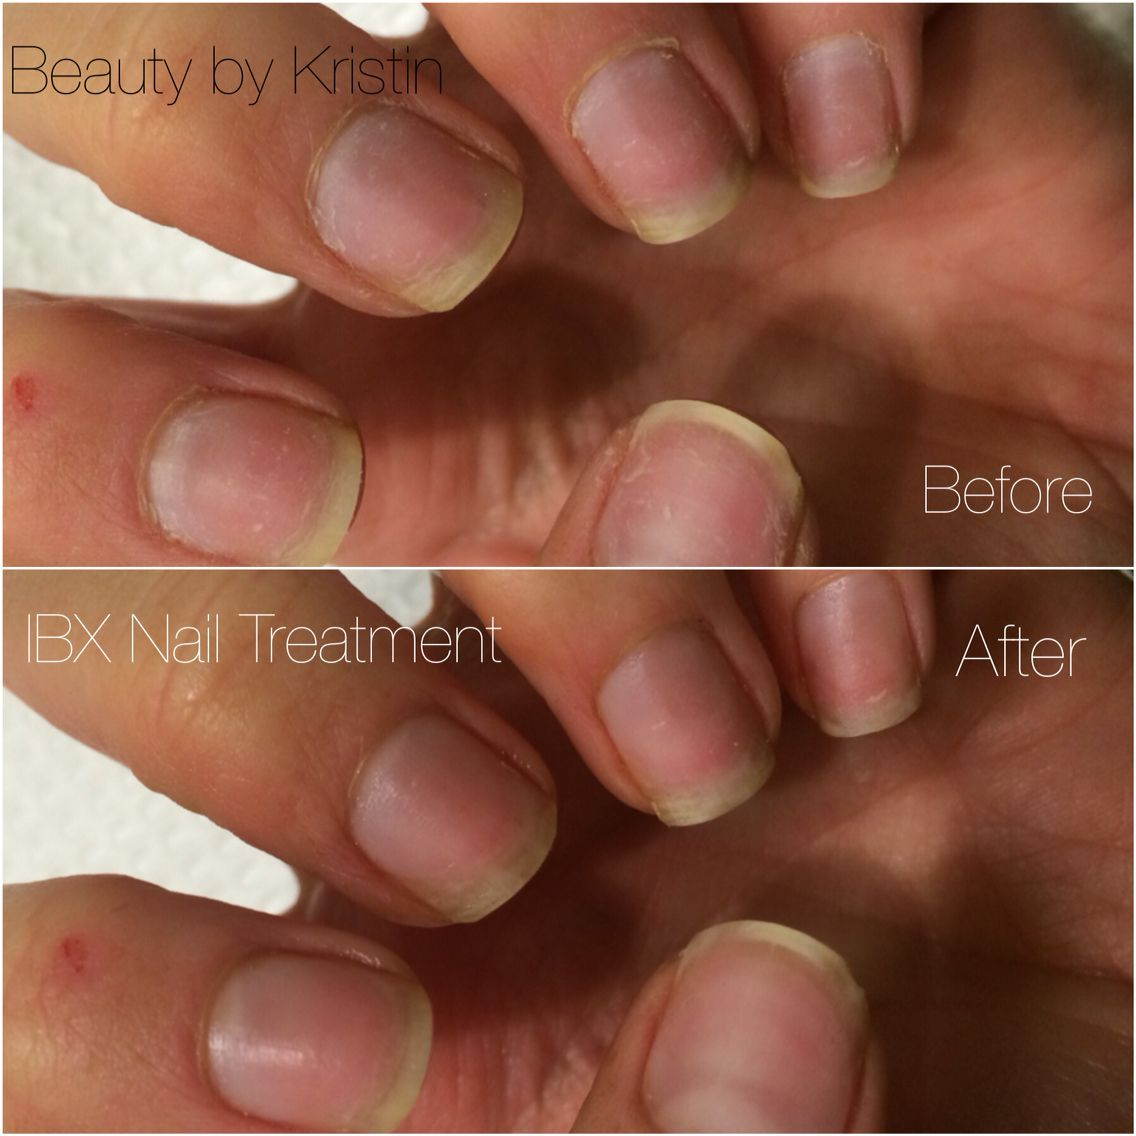 IBX nail treatment. The best invention ever #beautybykristink | IBX ...